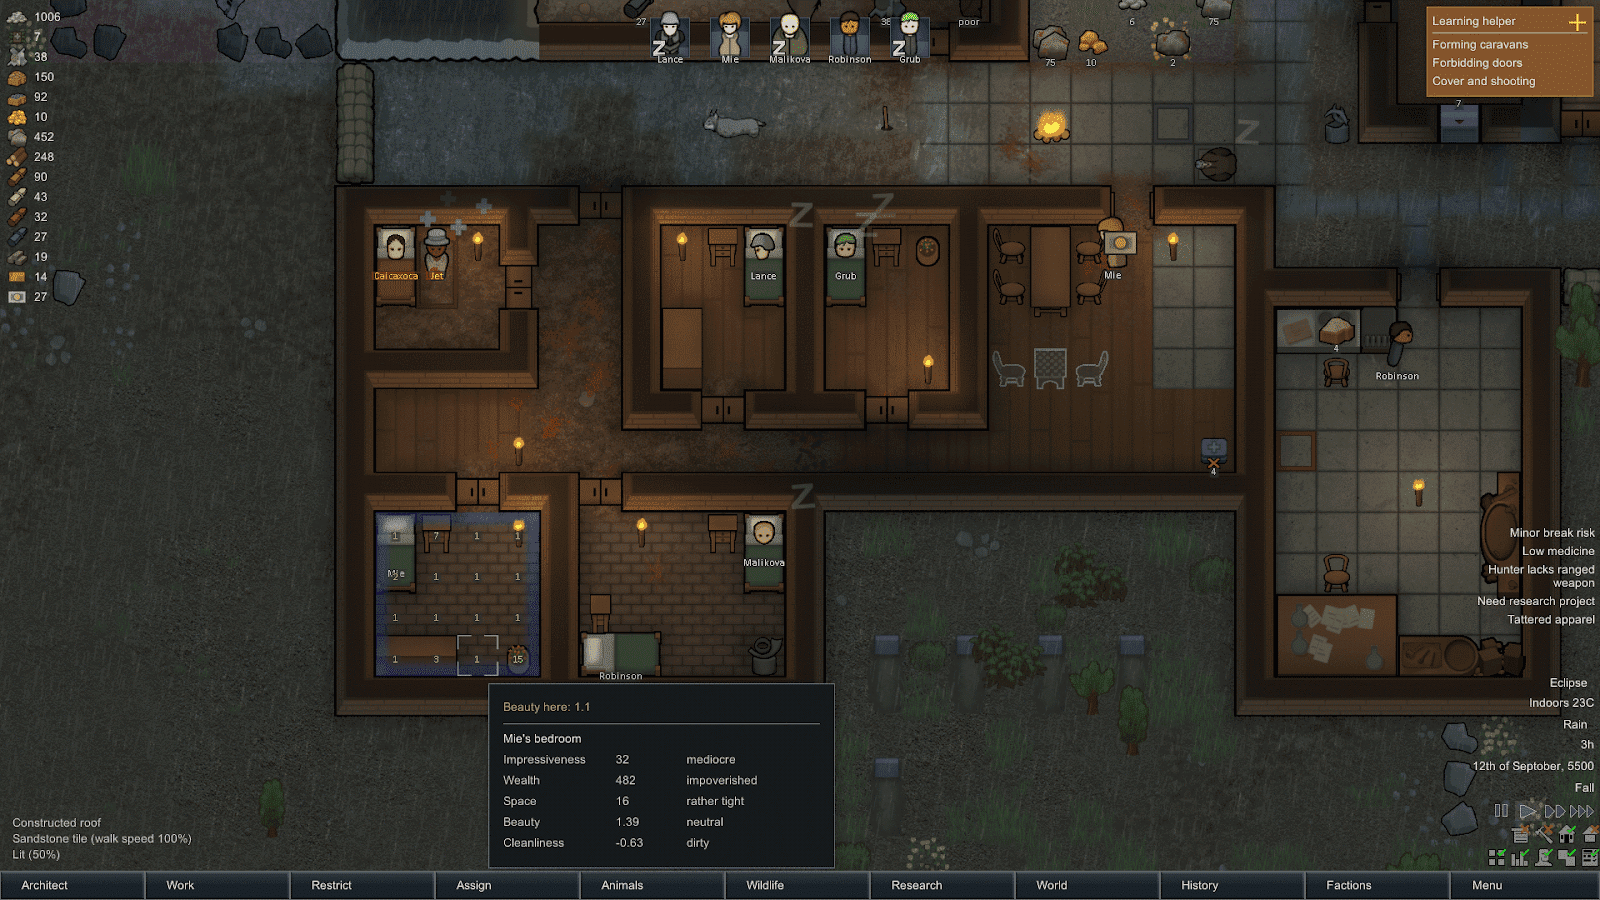 blog Habrador com: Why RimWorld sold more than 1 million copies